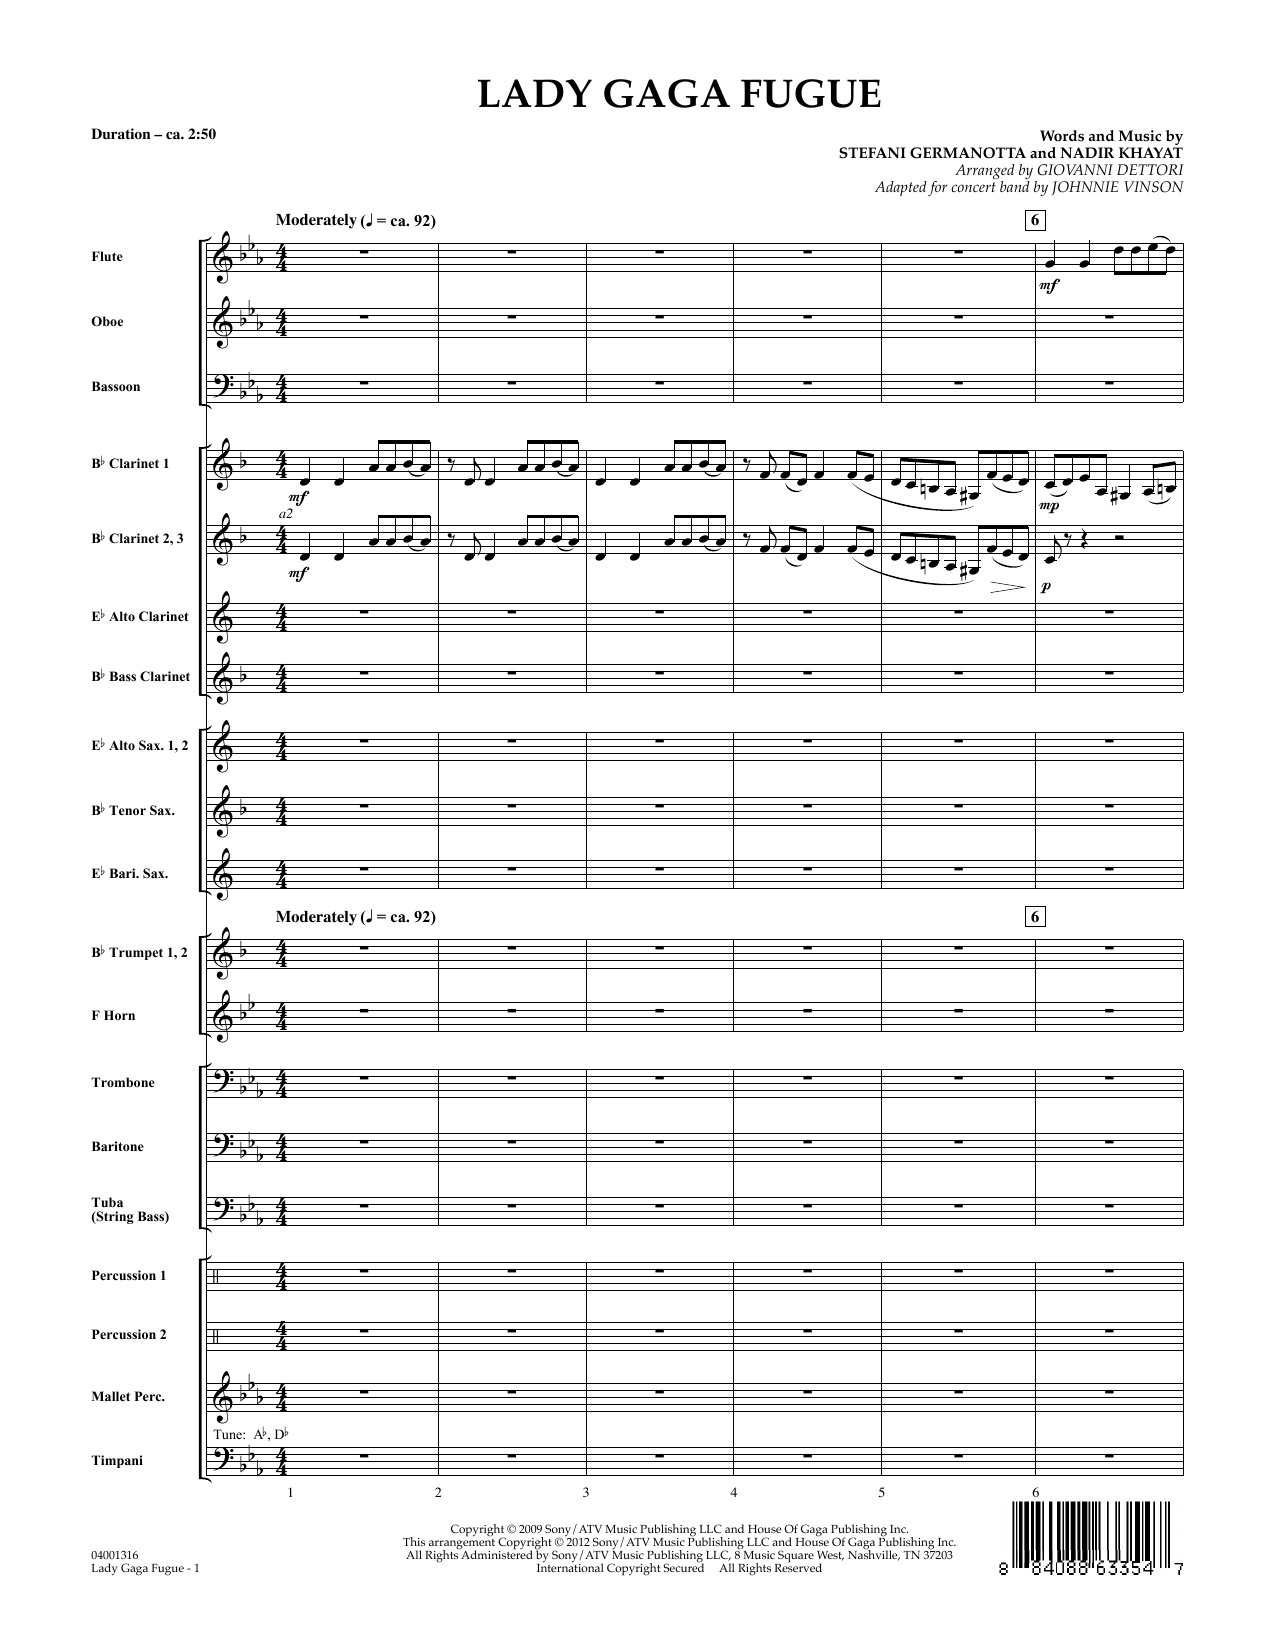 Lady Gaga Fugue (COMPLETE) sheet music for concert band by Johnnie Vinson, Giovanni Dettori, Lady Gaga and Nadir Khayat. Score Image Preview.